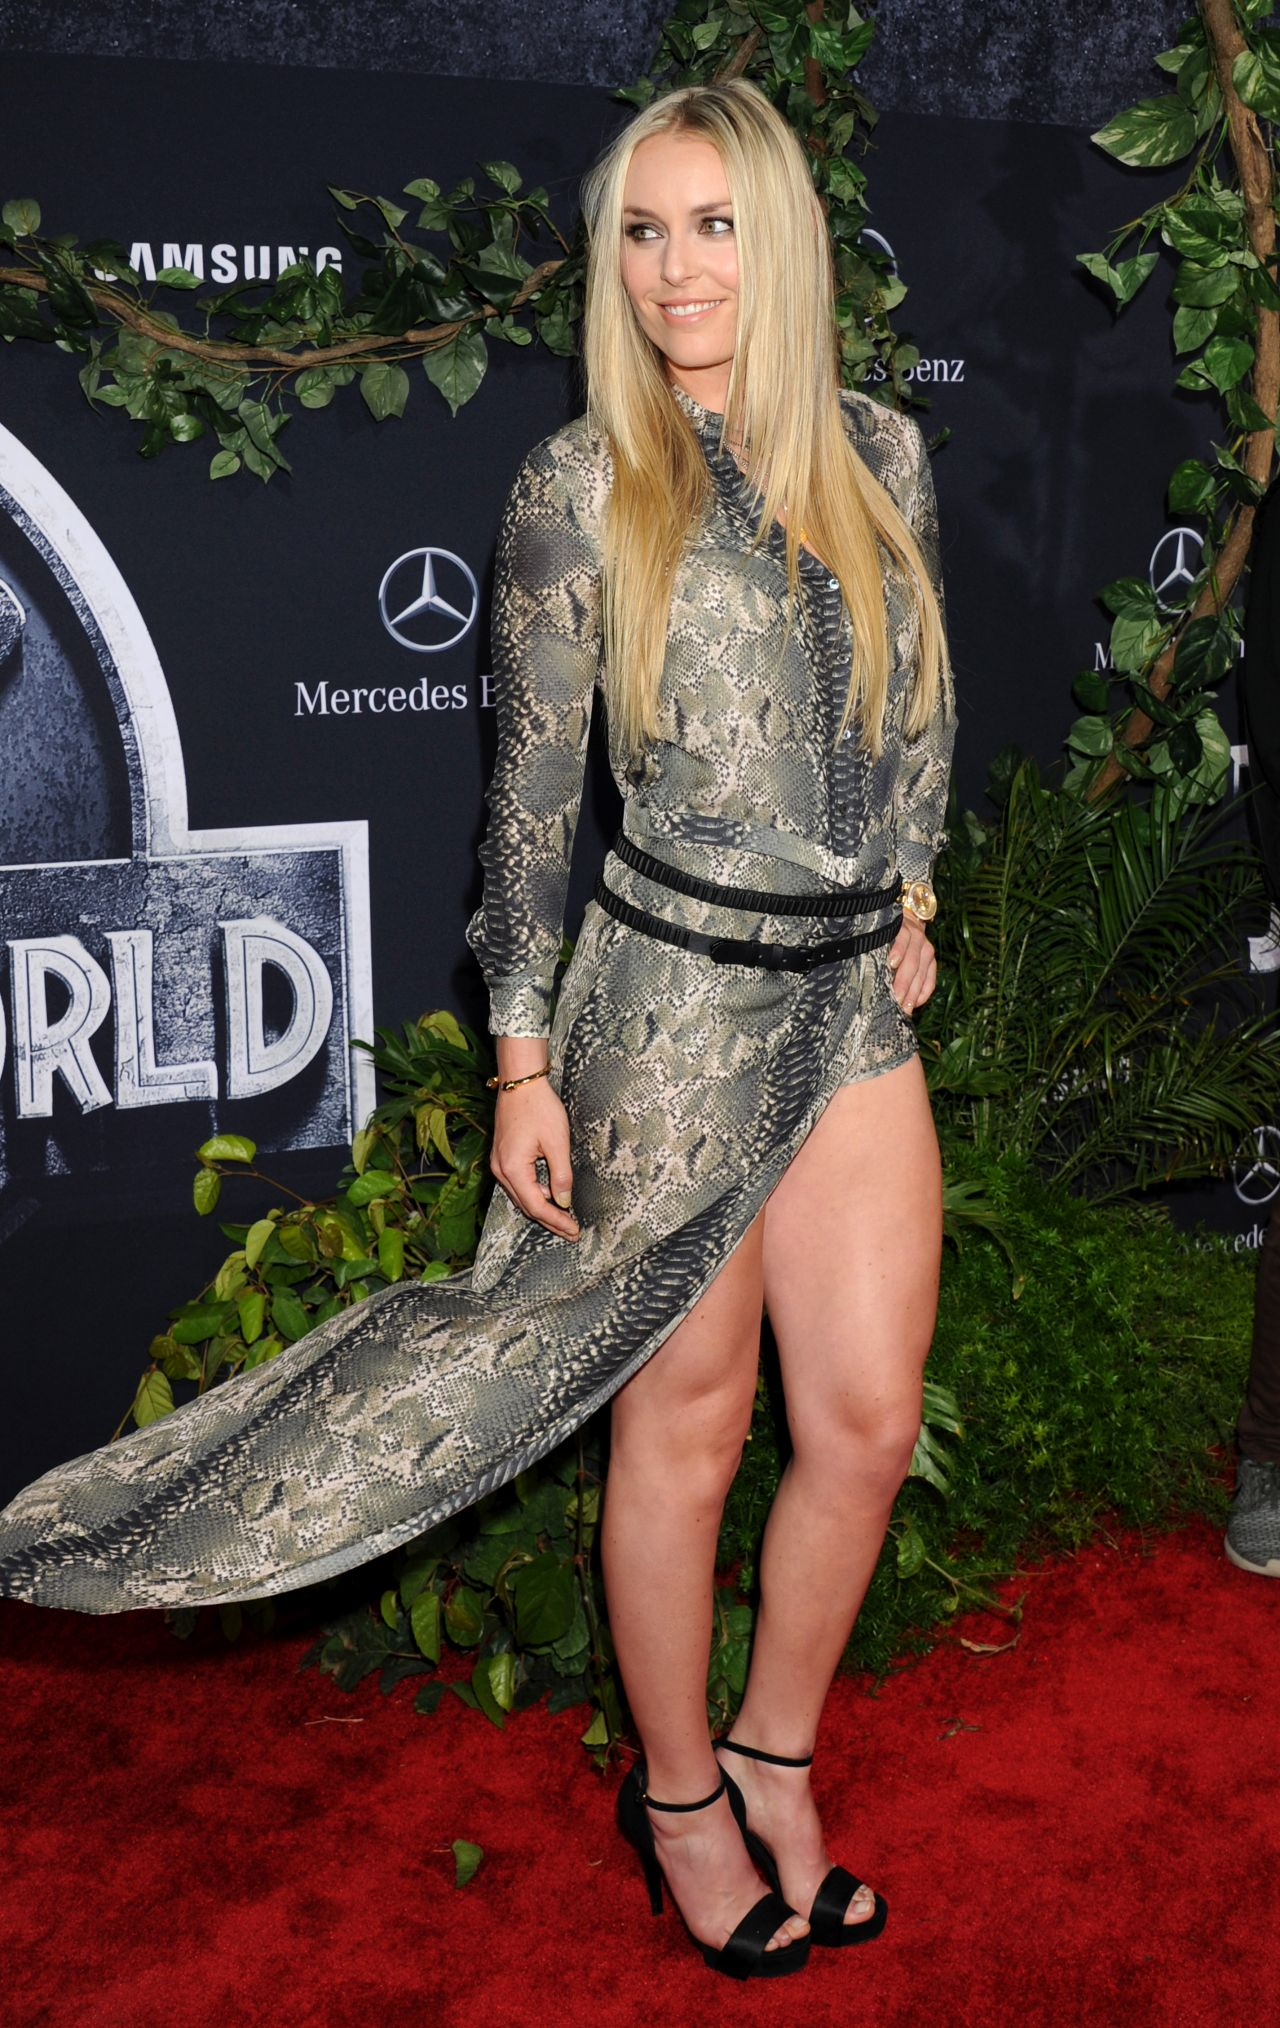 Lindsey Vonn Jurassic World Premiere In Hollywood